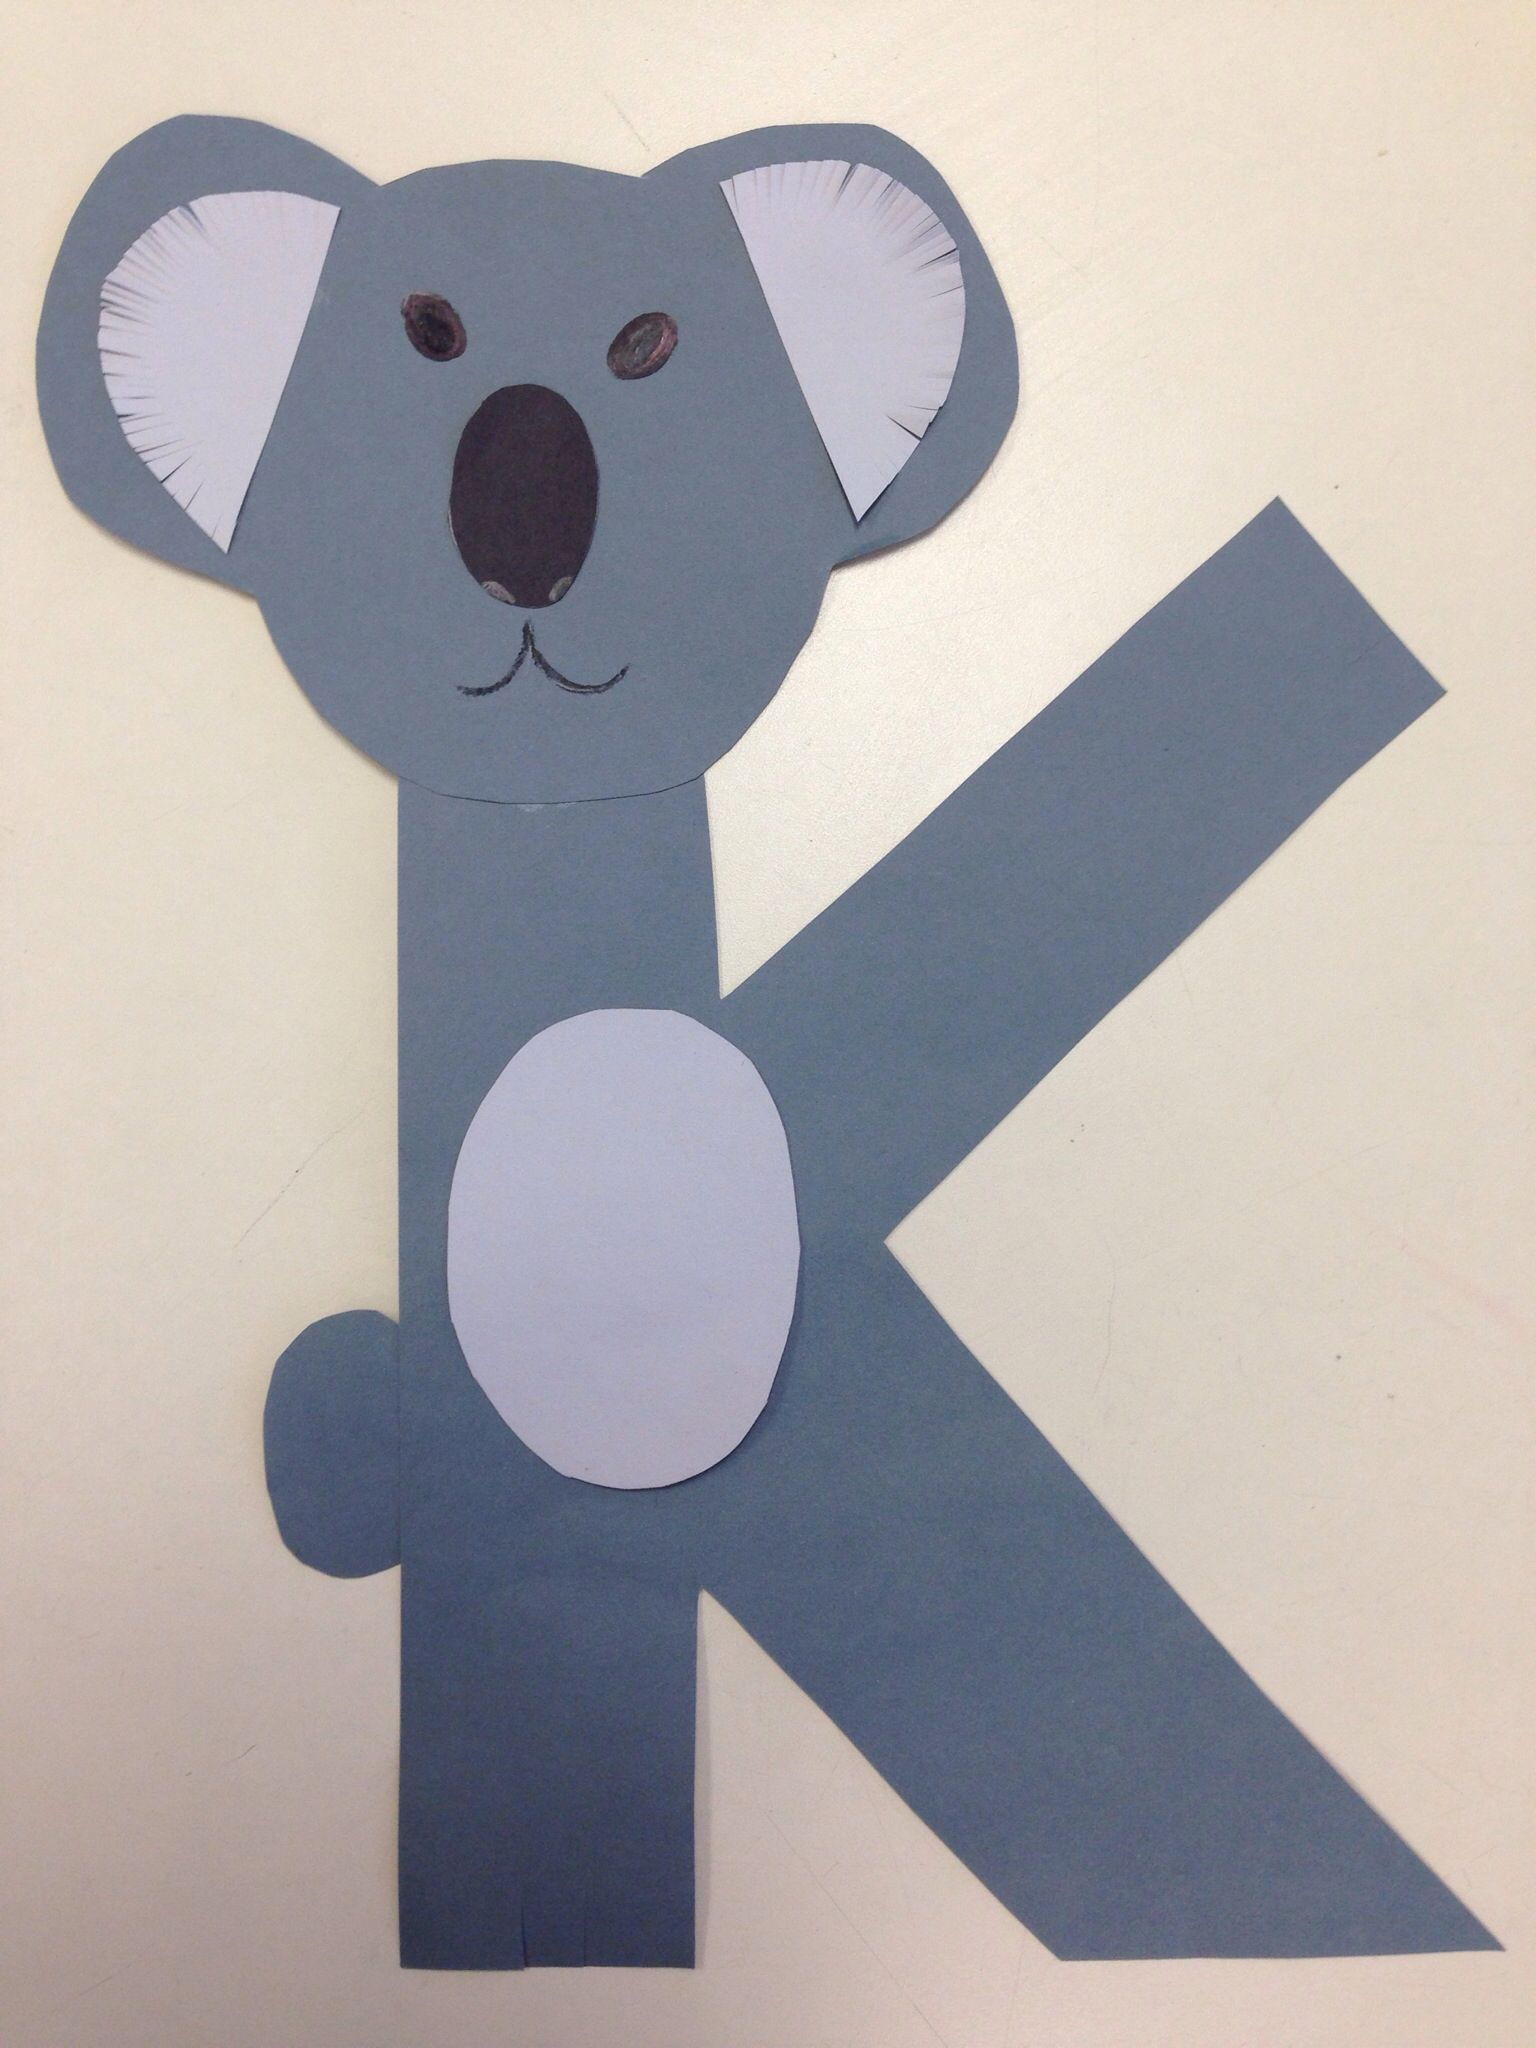 K For Koala Preschool K Crafts Children K Crafts Alphabet